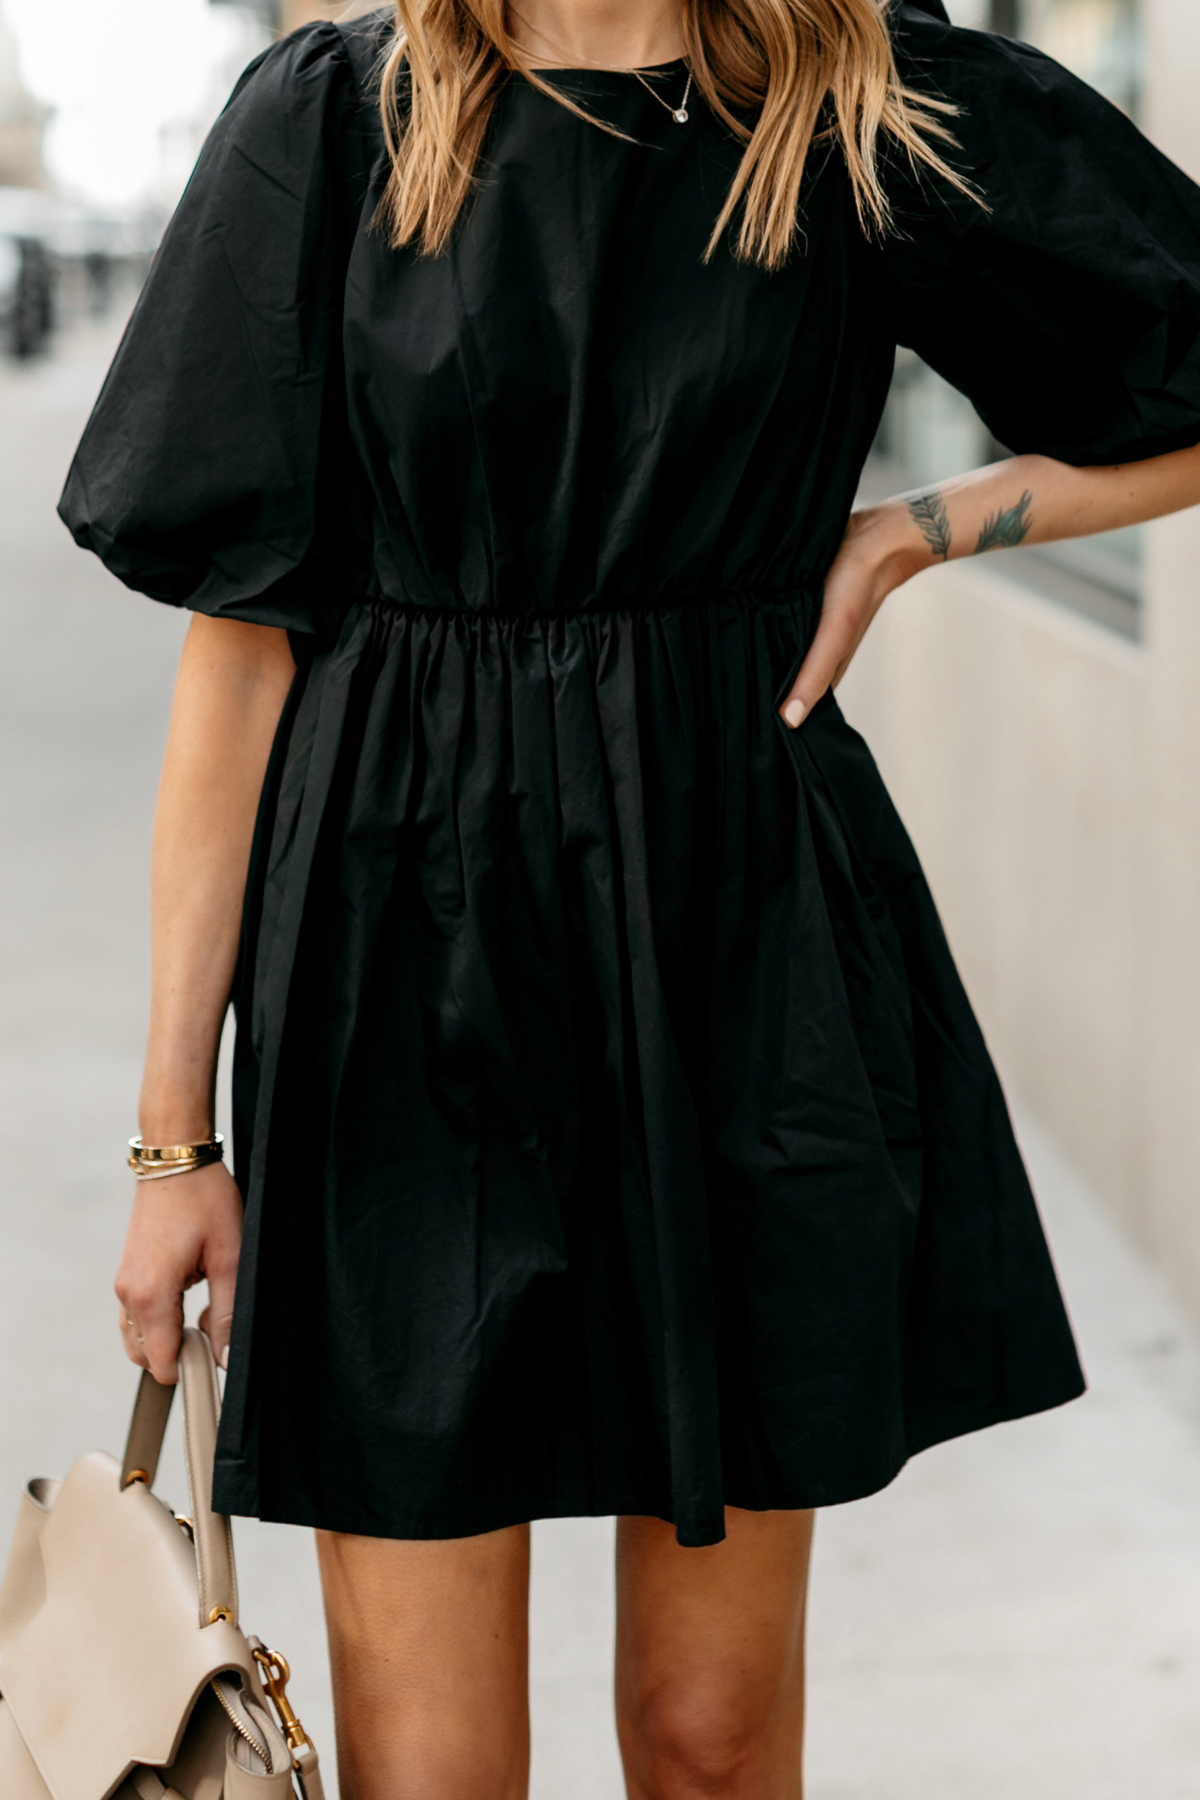 Fashion Jackson Wearing Madewell Little Black Dress Outfit 1